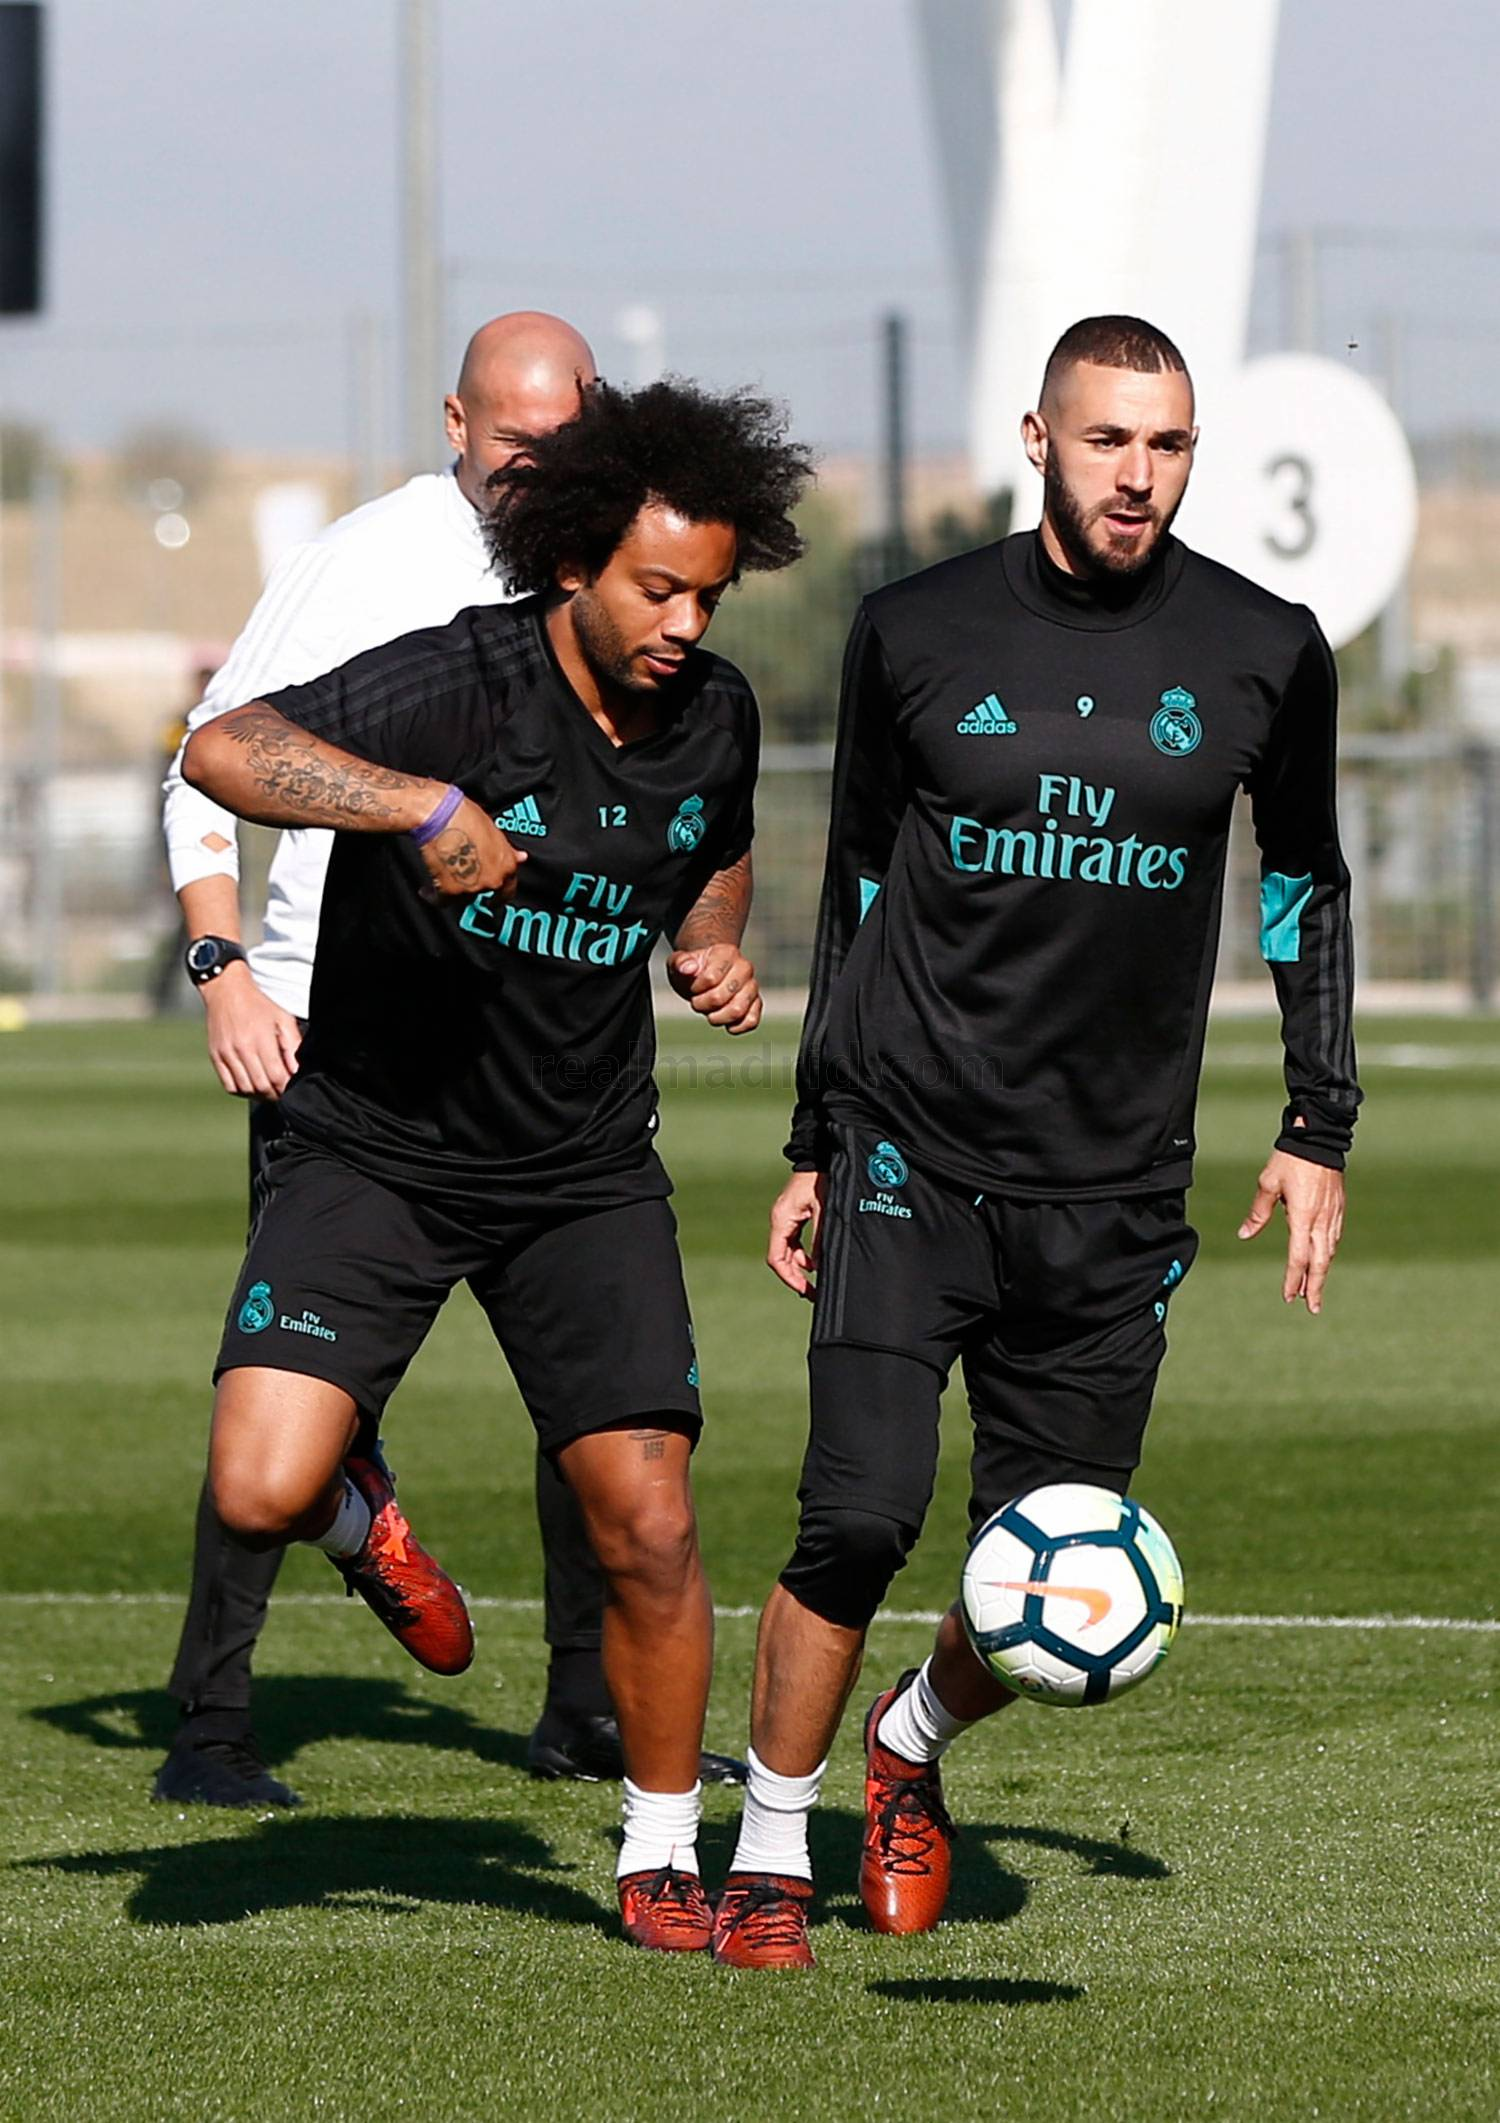 Real Madrid - Entrenamiento del Real Madrid - 13-10-2017